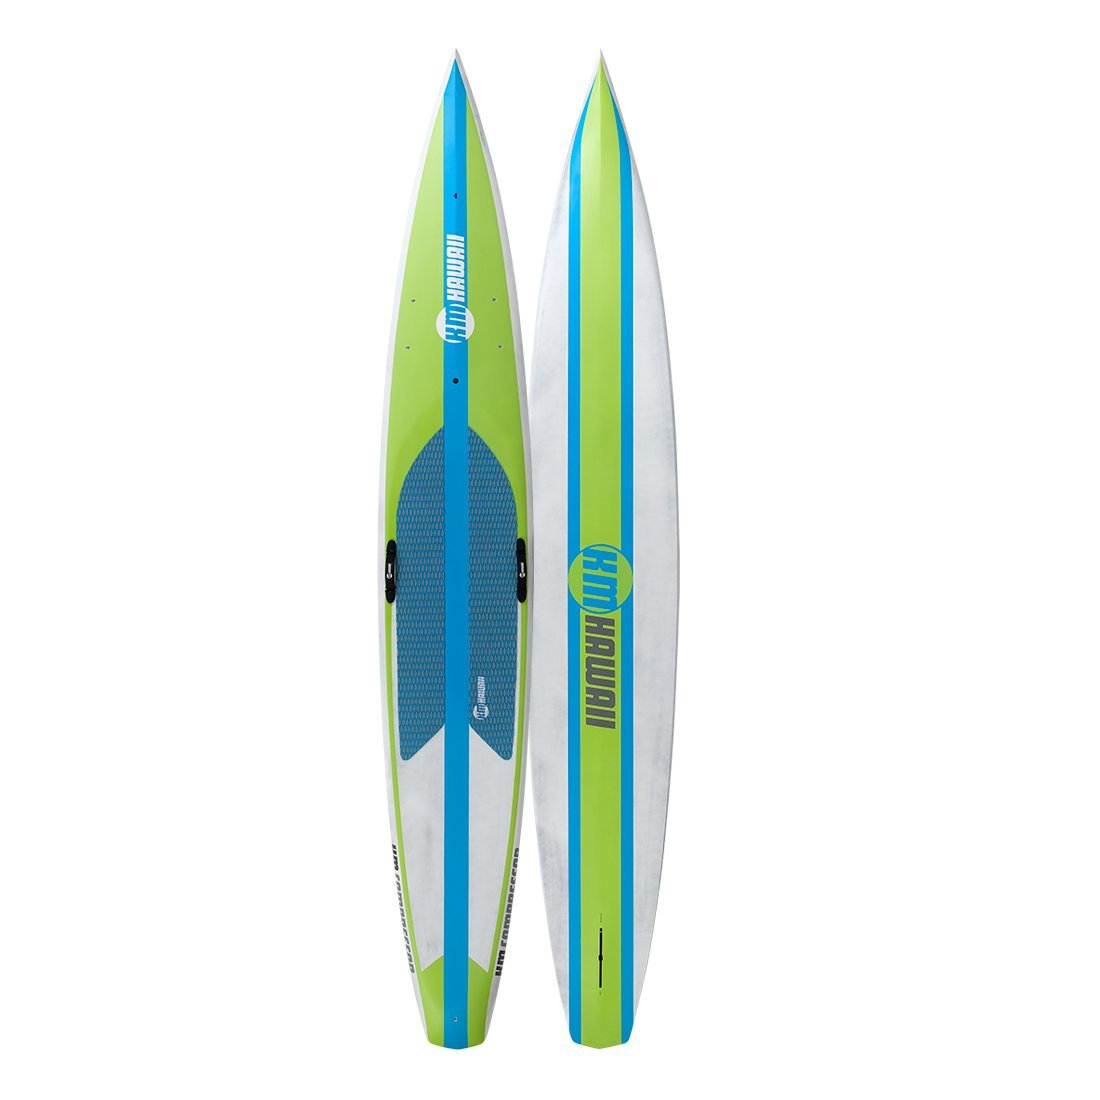 "KM Hawaii CompressorHP - Green-Blue - 14'0"" x 27.5"" Carbon Fiber Performance Standup Paddle Board Paddle Boards 4theoutdoors America US USA SUP outdoors"